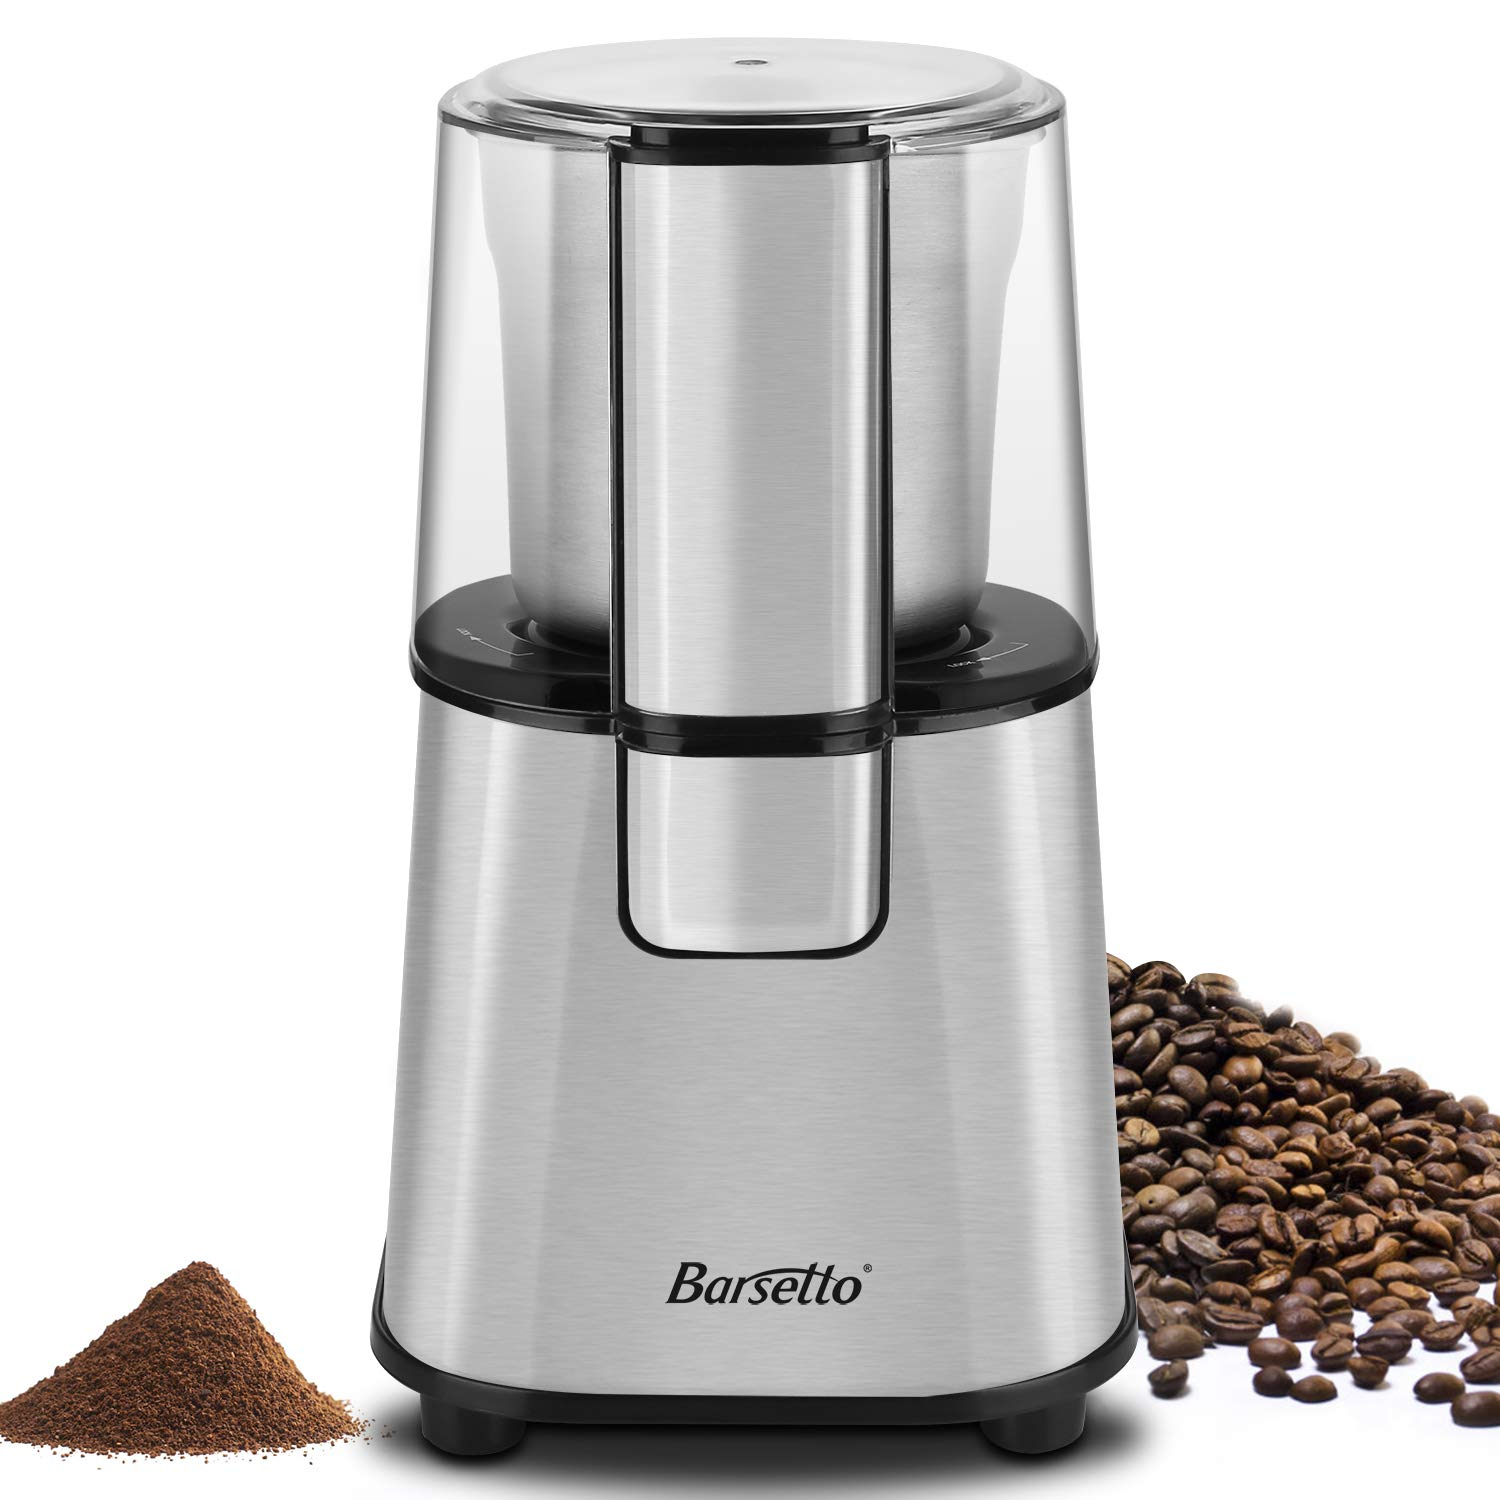 Barsetto Electric Coffee Grinder with Removal Coffee Powder Bowl, 200W Blade Spice Grinder,Stainless Steel by Barsetto